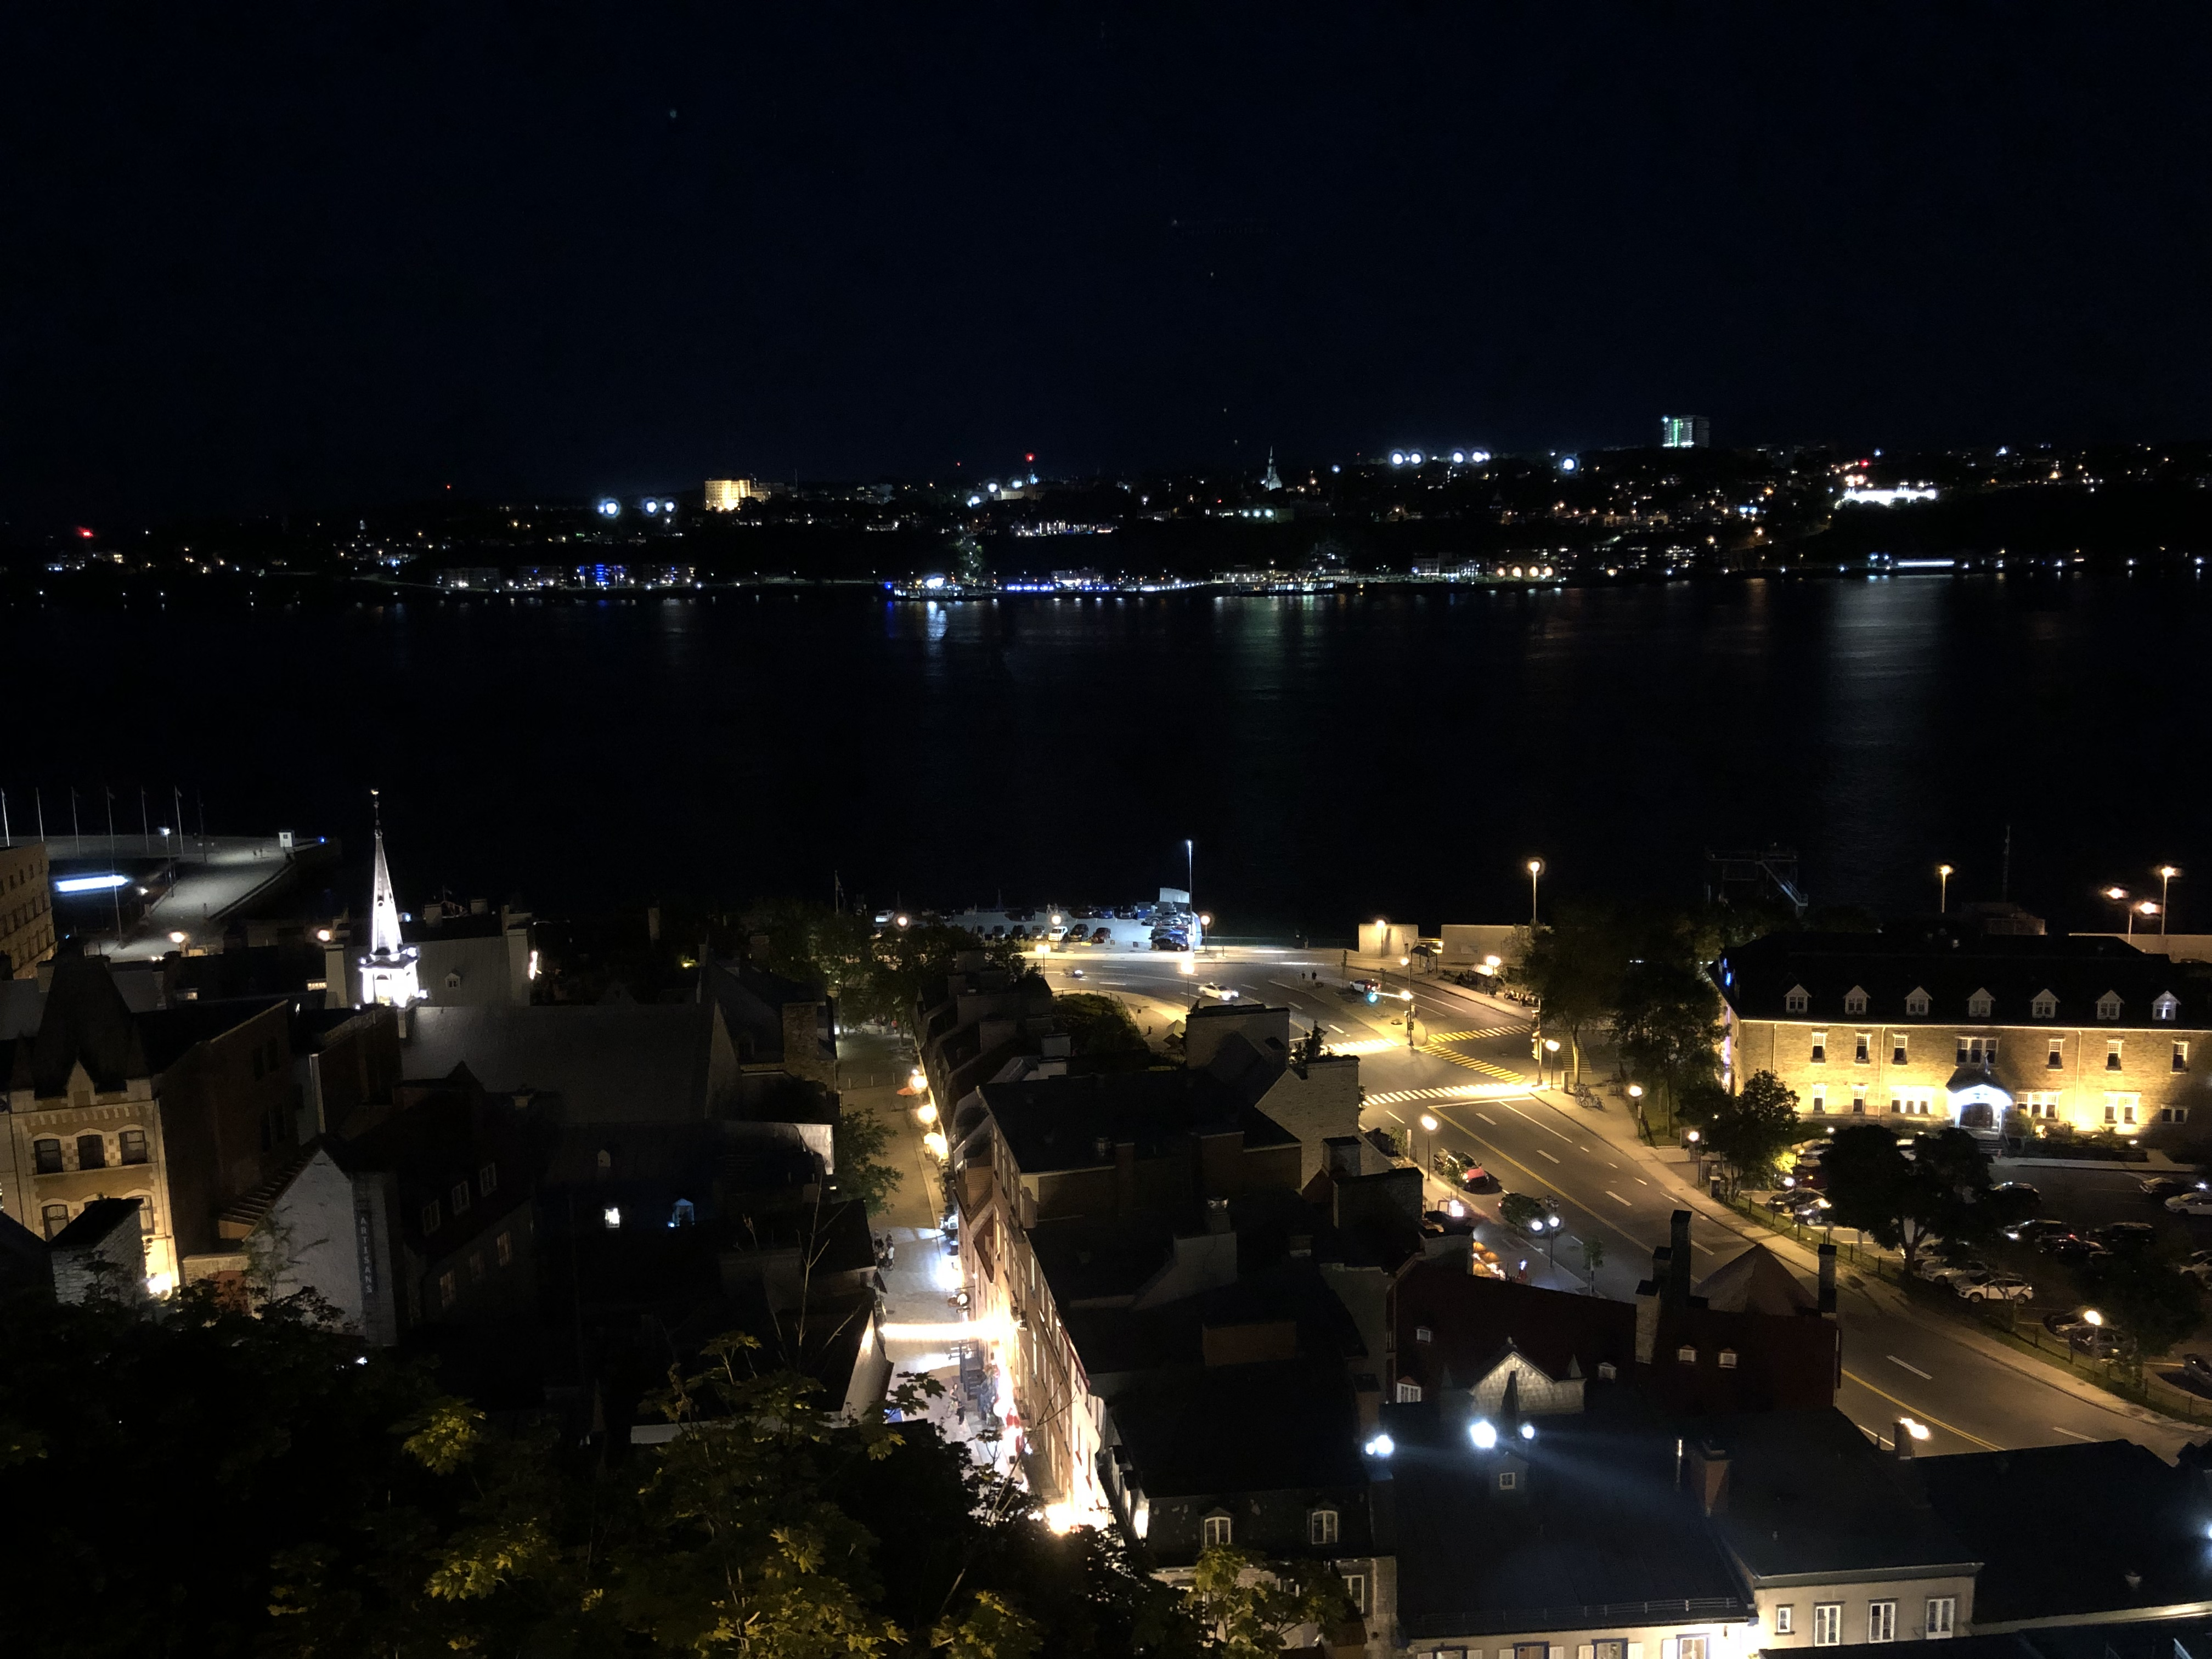 nighttime city lights over Quebec City